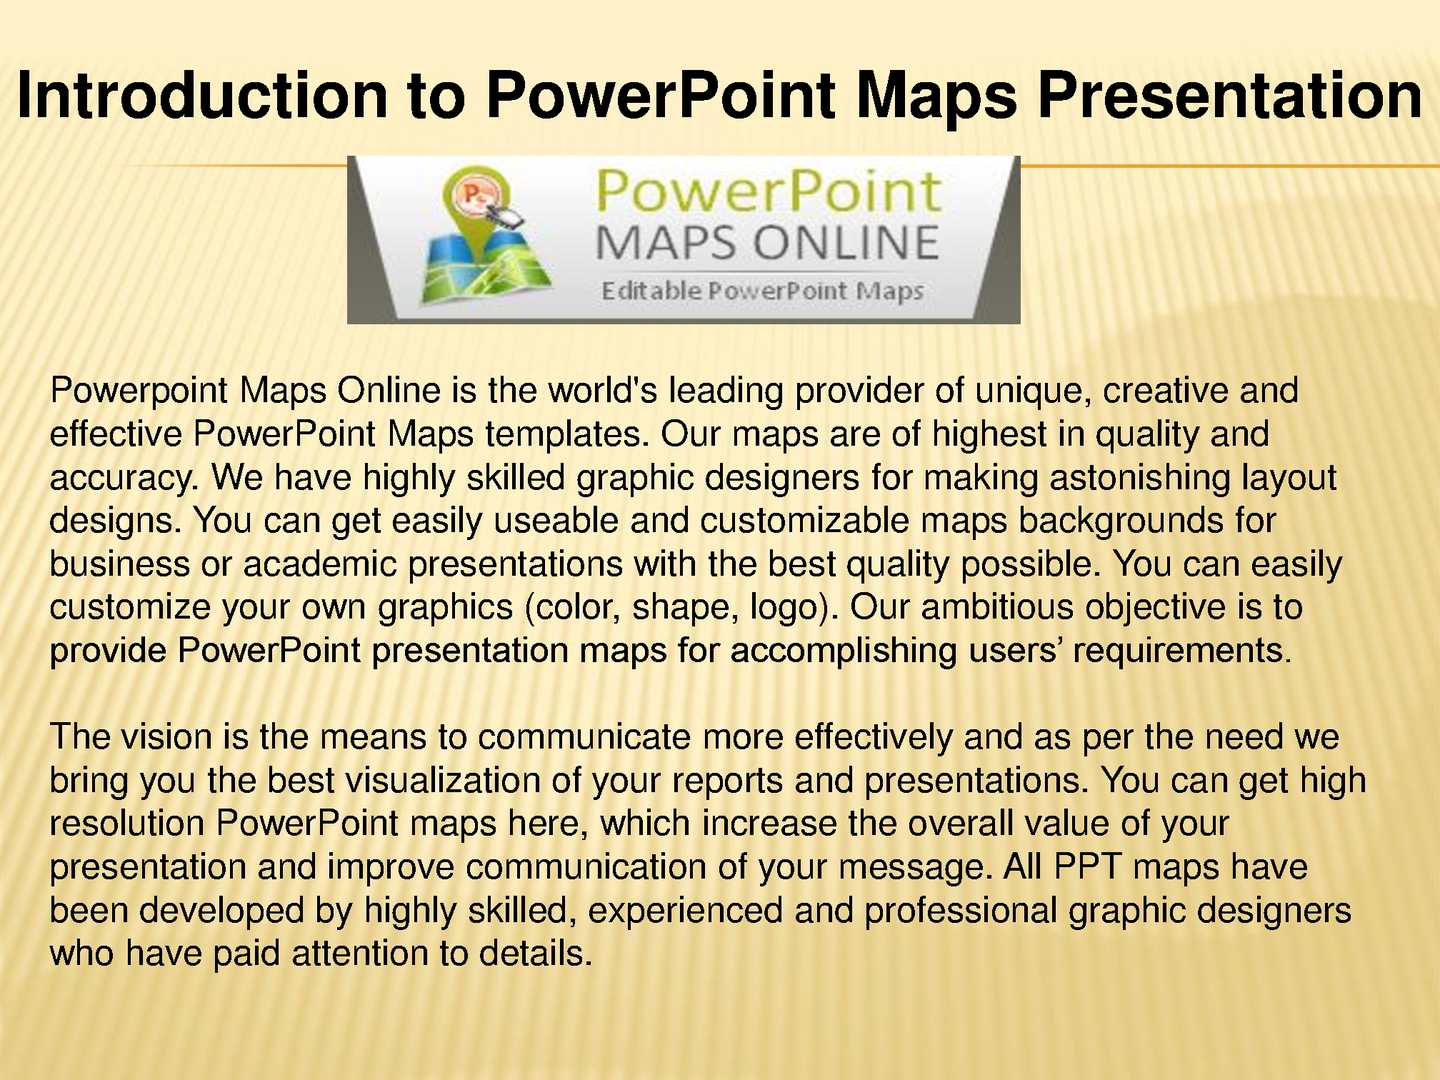 Calaméo - Introduction to PowerPoint Maps Presentation